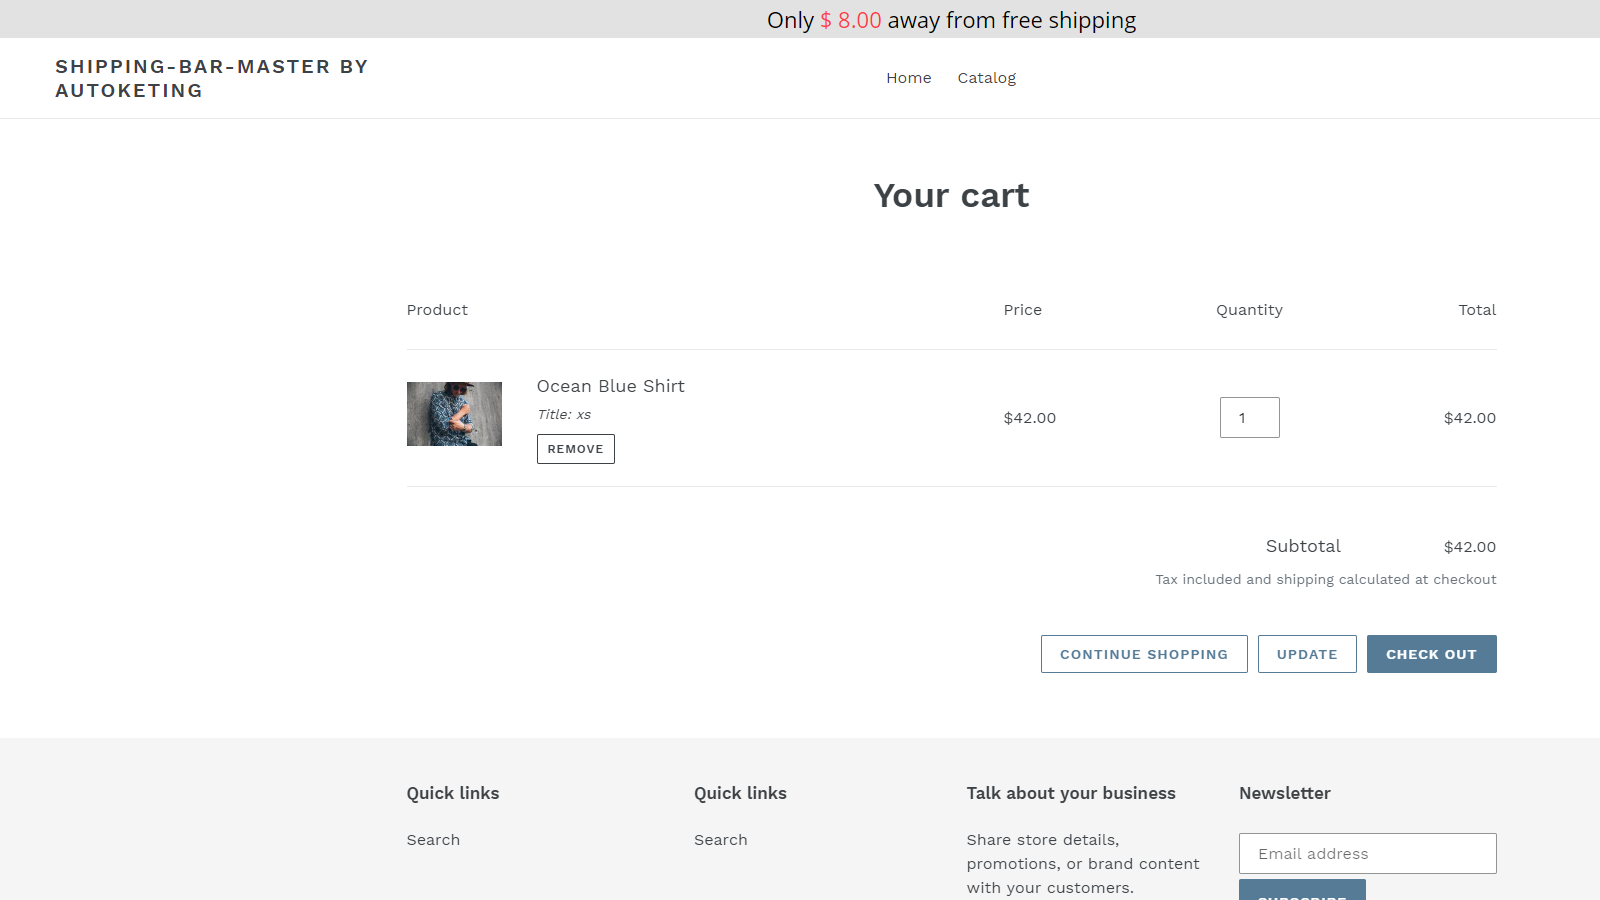 Autoketing - Free shipping bar on the online store 2